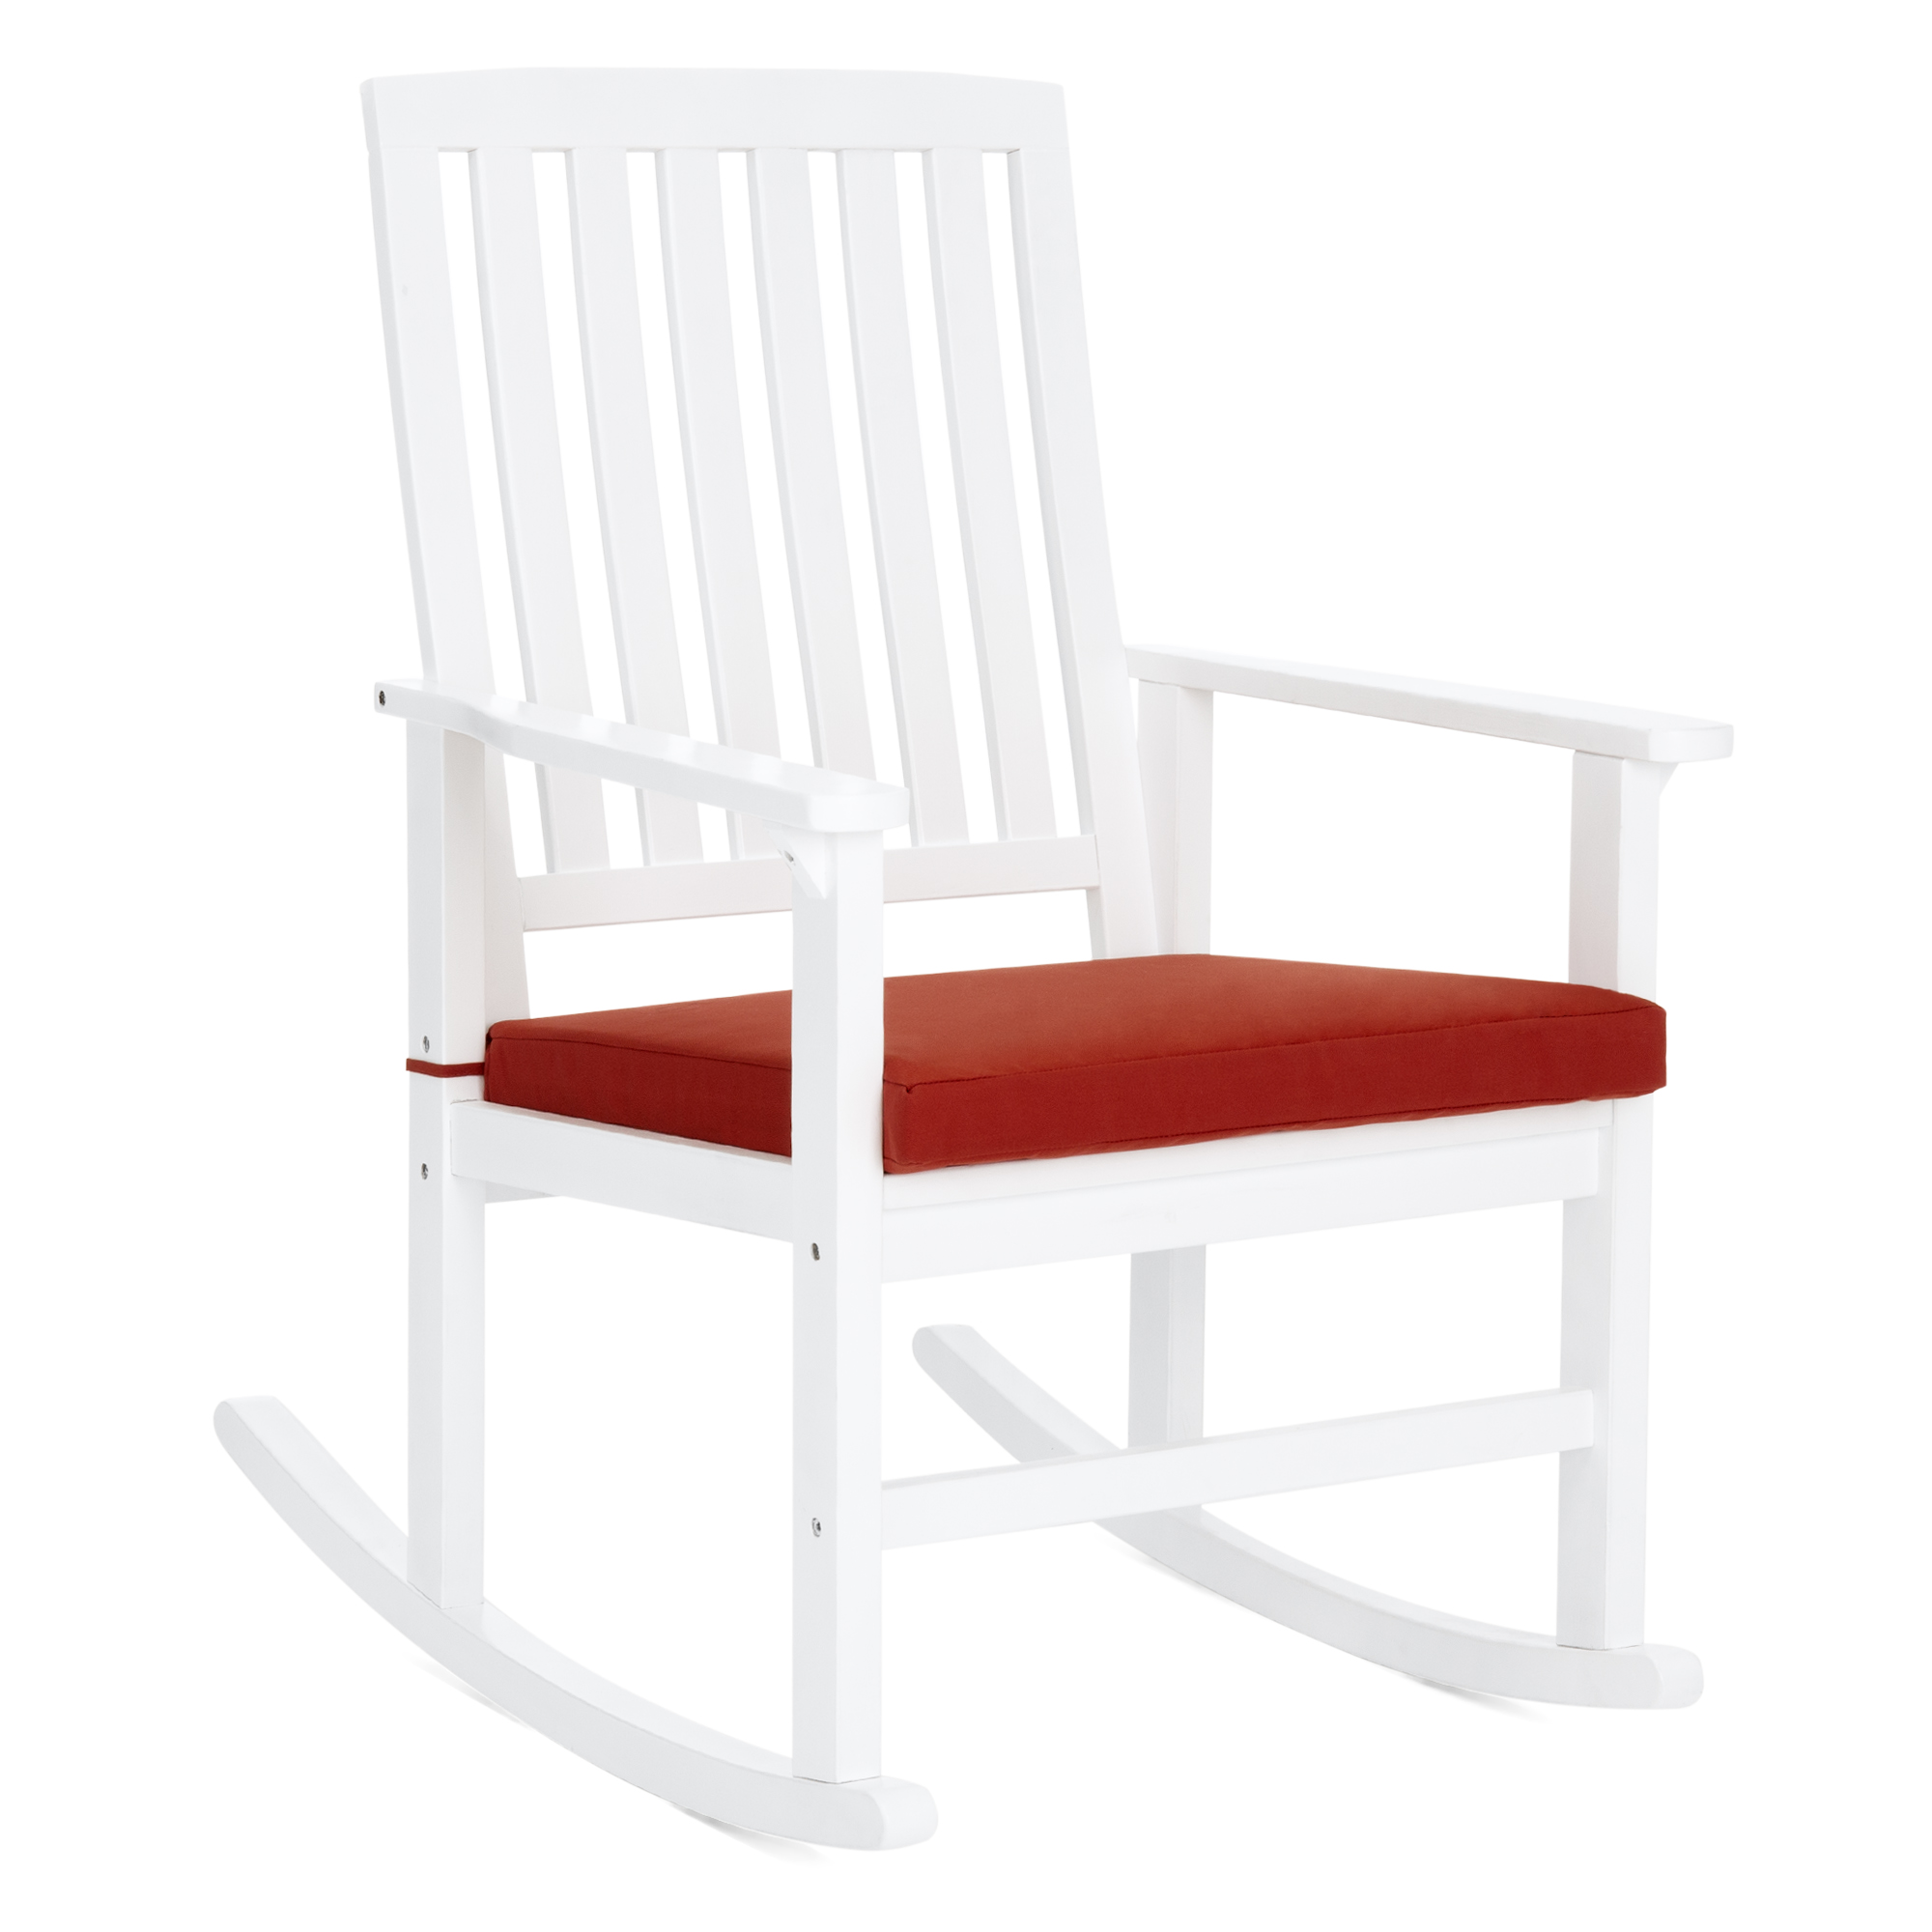 Best Choice Products Indoor Outdoor Home Furniture Wooden Patio Rocking Chair Porch Rocker Set Glider Furniture w/ Seat Cushion - White/Red